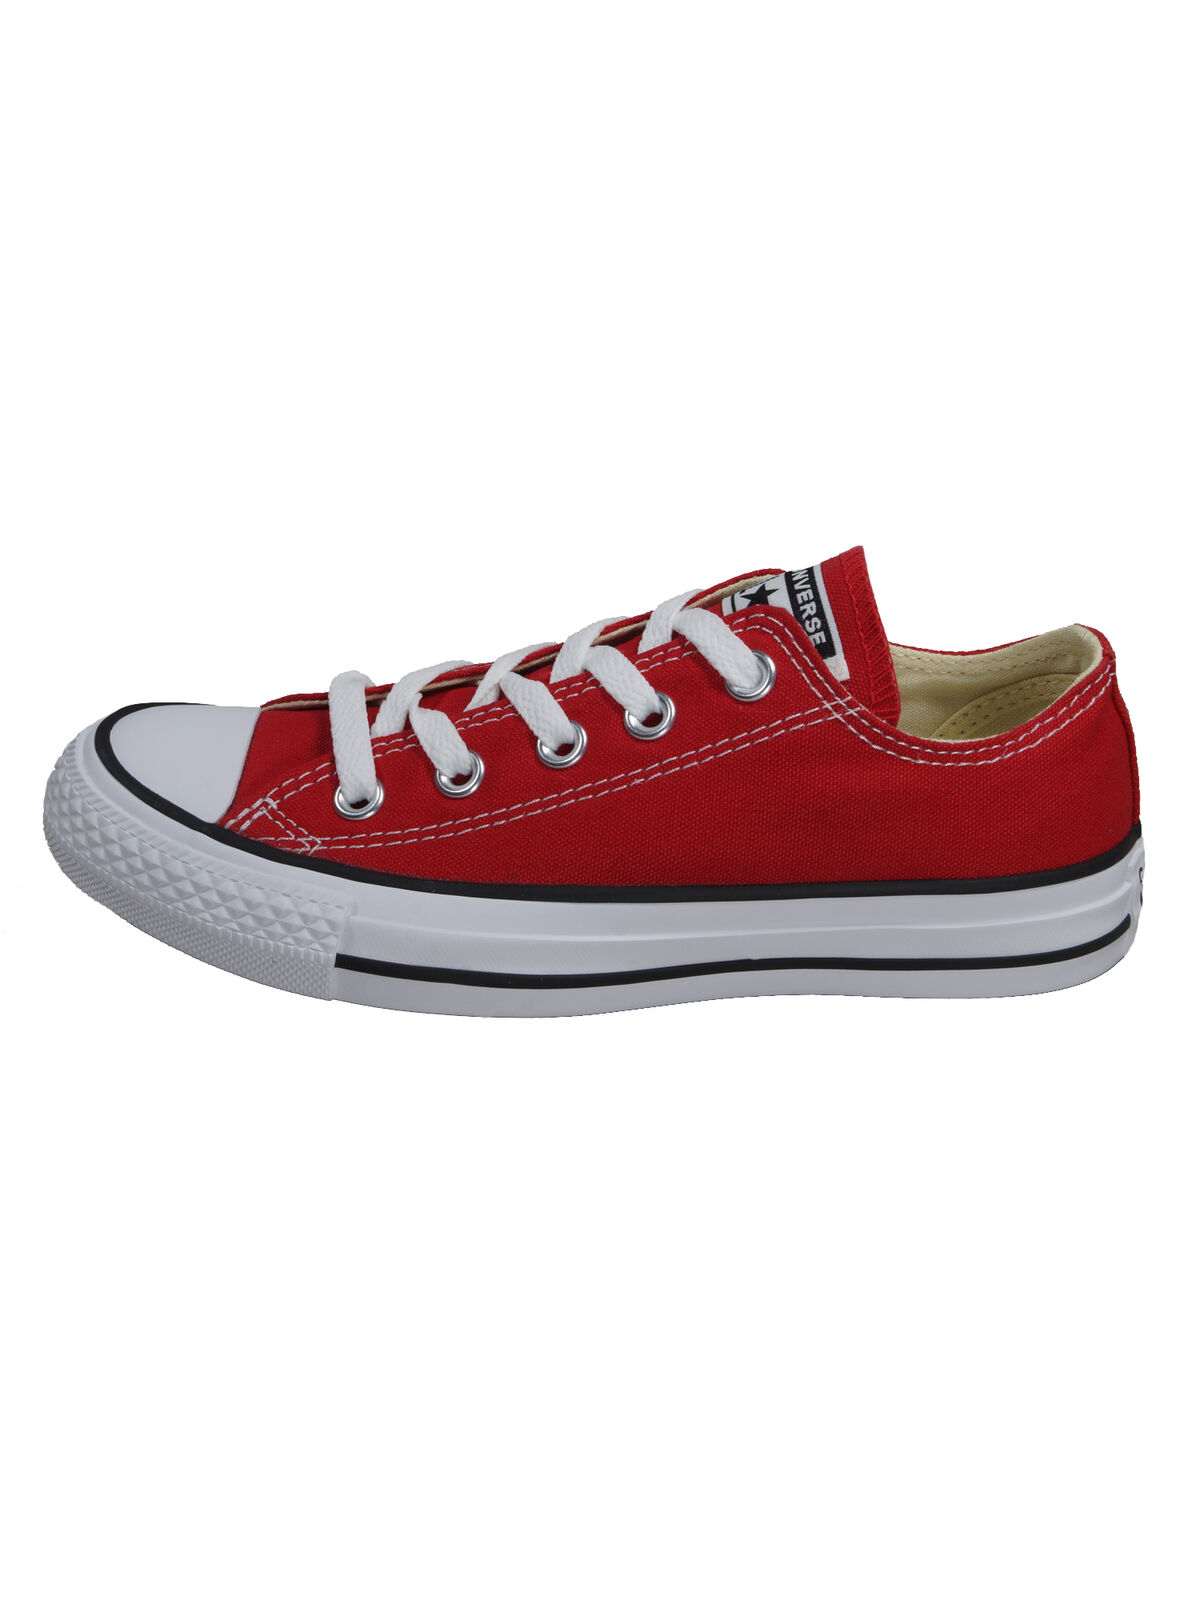 Converse Chaussures Hommes Ct all star ox rouge lin Baskets taille 43